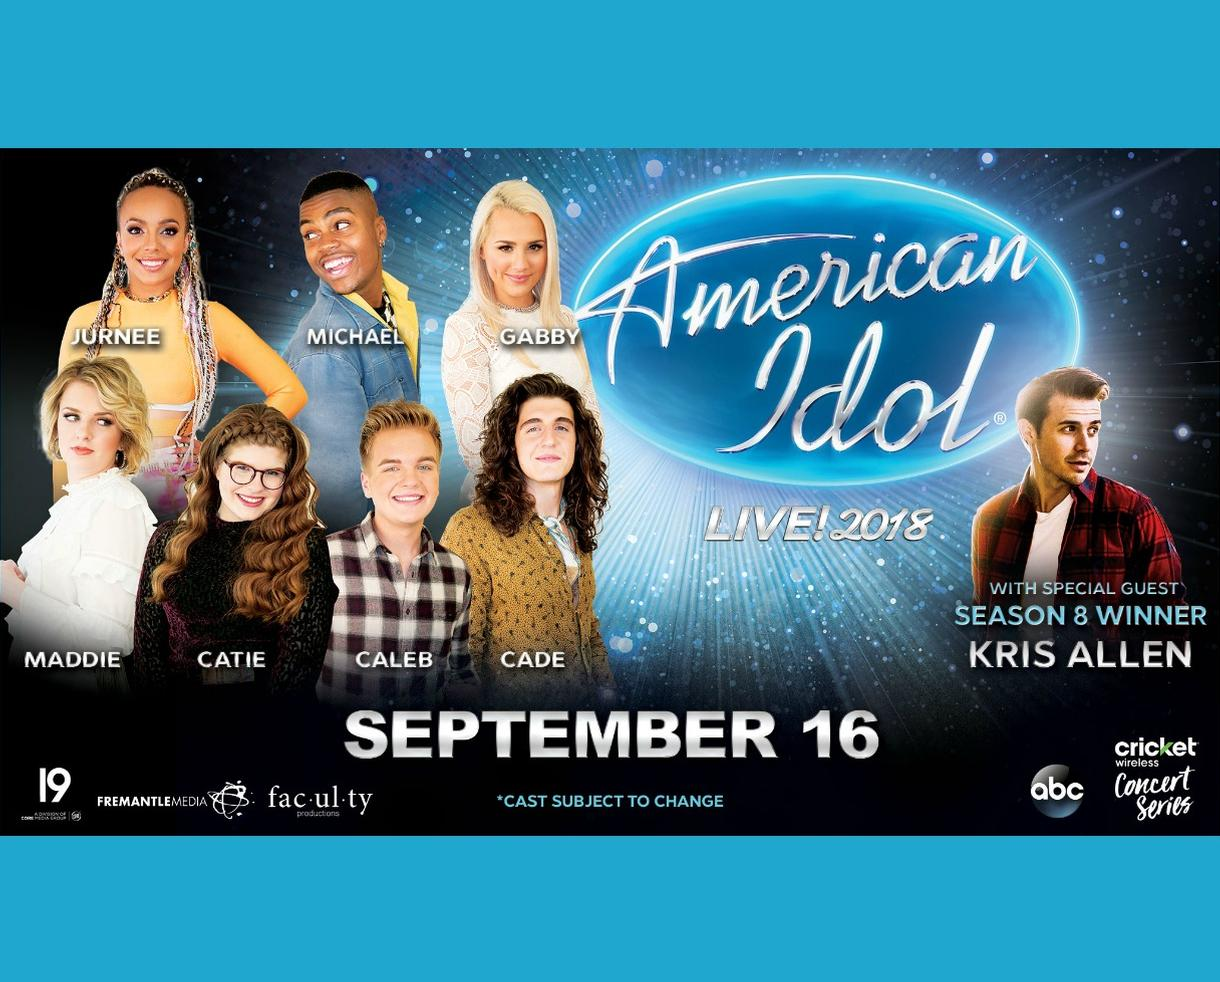 American Idol: Live! 2018 at The Warner Theatre